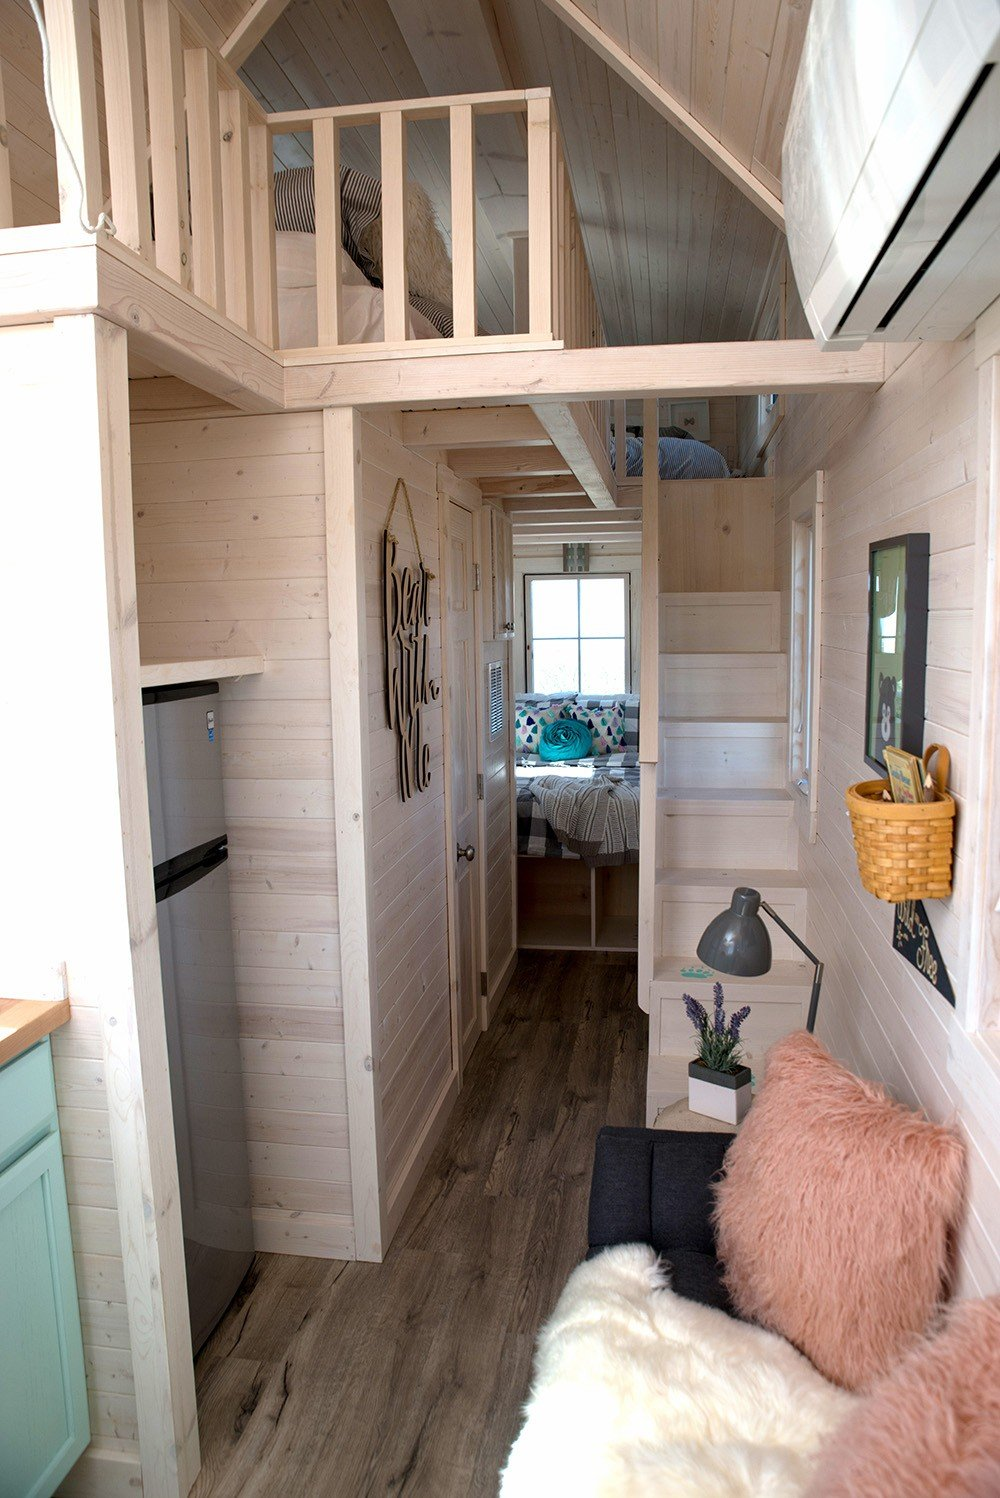 Colorful jellystone park tumbleweed tiny house rvs available for rent - Tumbleweed tiny house interior ...